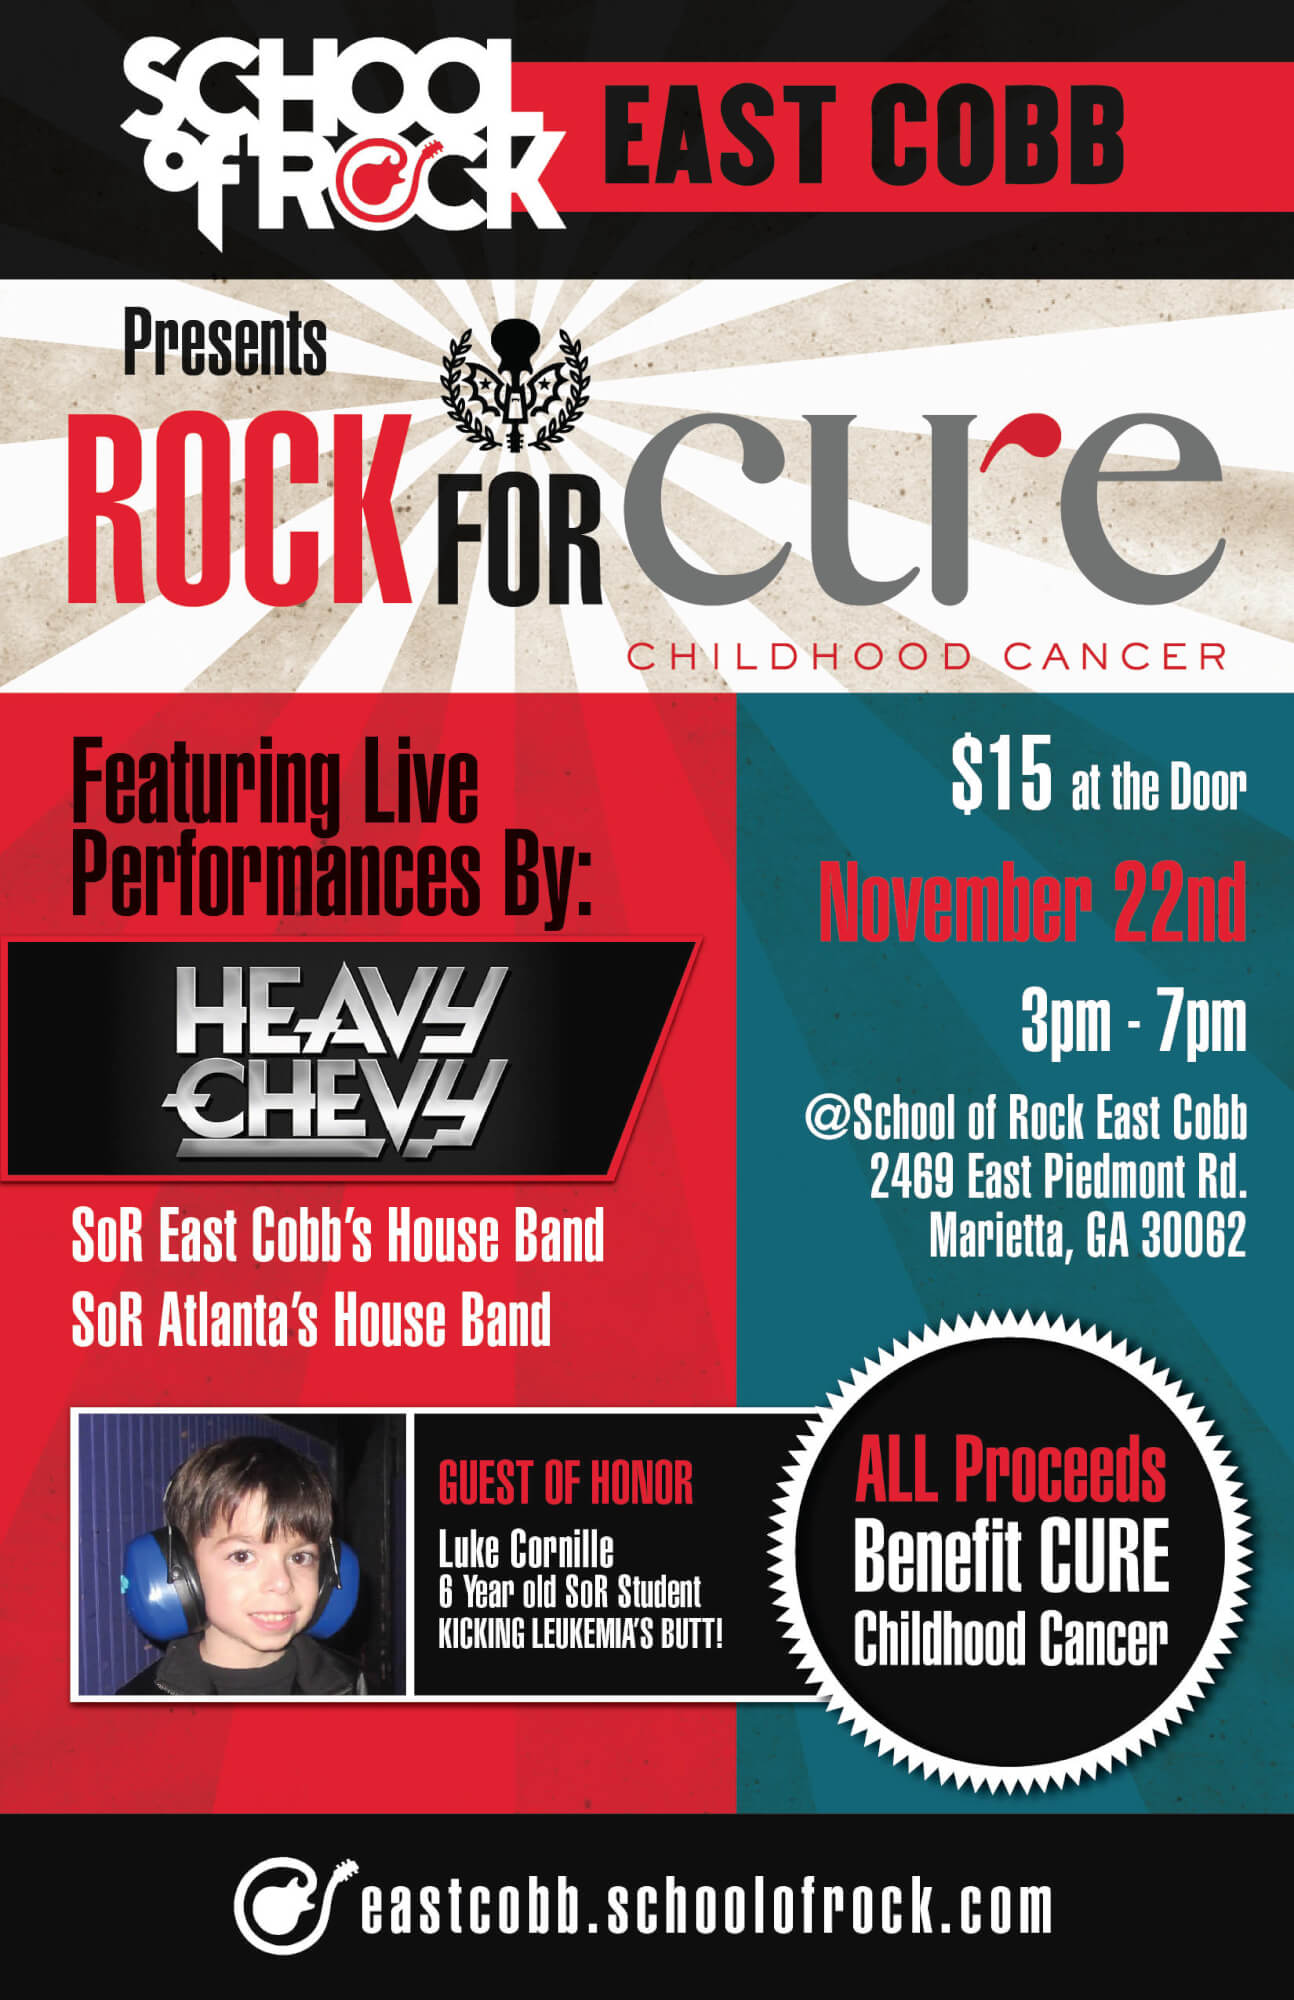 ROCK For CURE Childhood Cancer, Saturday, Nov 22, 2014 3pm-7pm.  1005 proceeds to benefit CURE.  House band performs from Atlanta School and East Cobb School.  Also, special appearance from Atlanta Local Funk Band, Heavy Chevy.